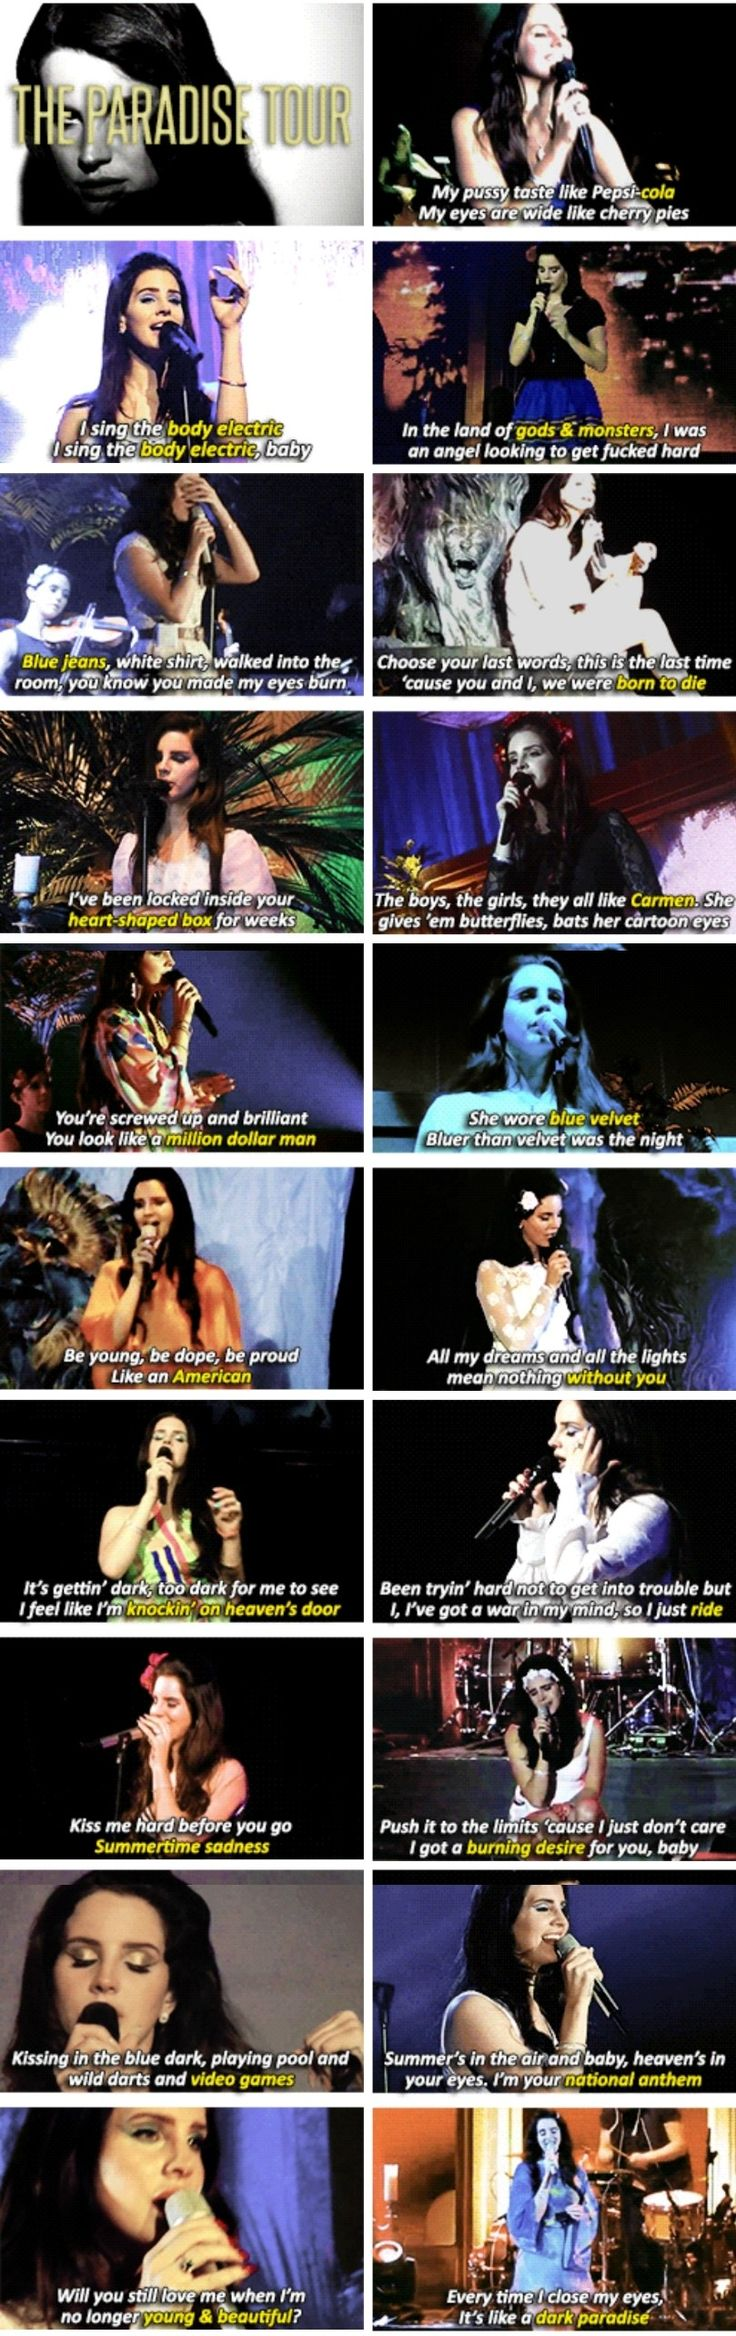 Lana Del Rey on her Paradise Tour (2013) #songs #lyrics